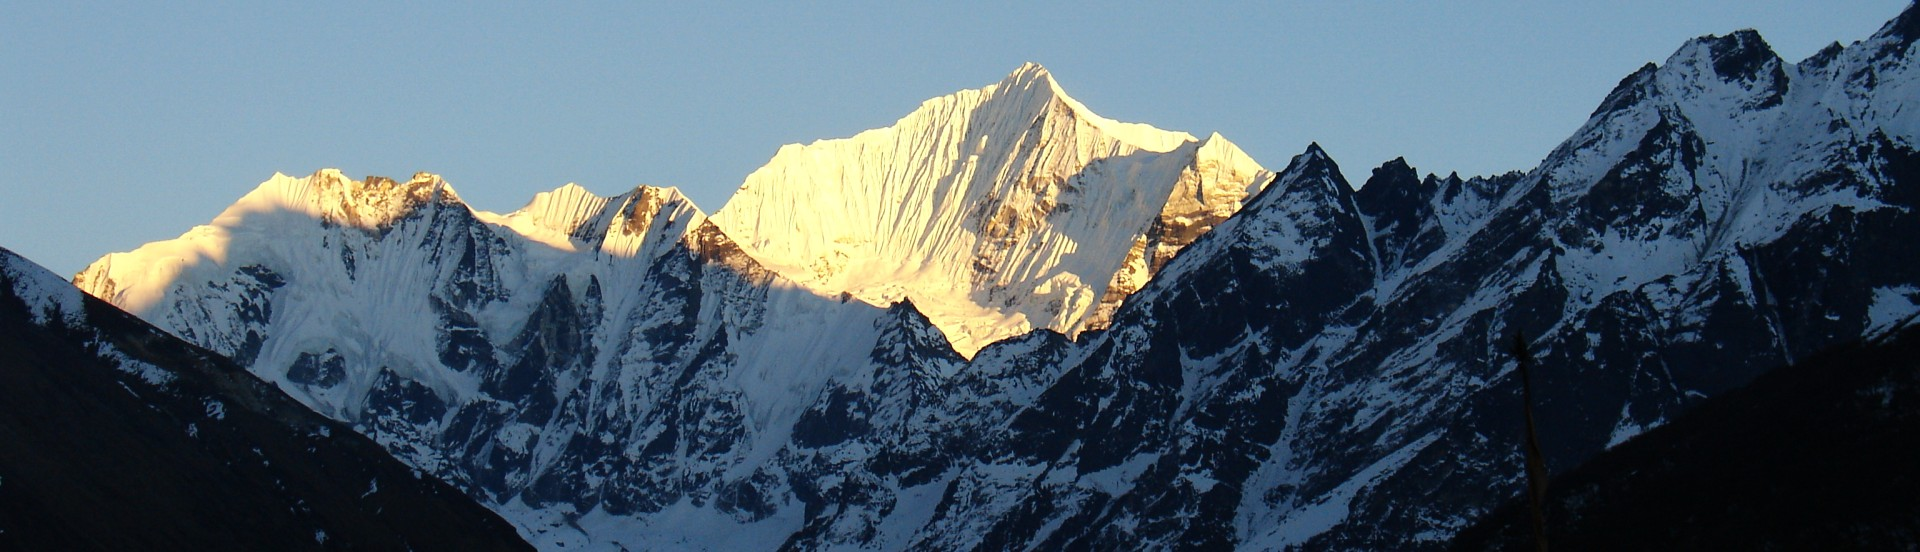 Langtang Photo Gallery